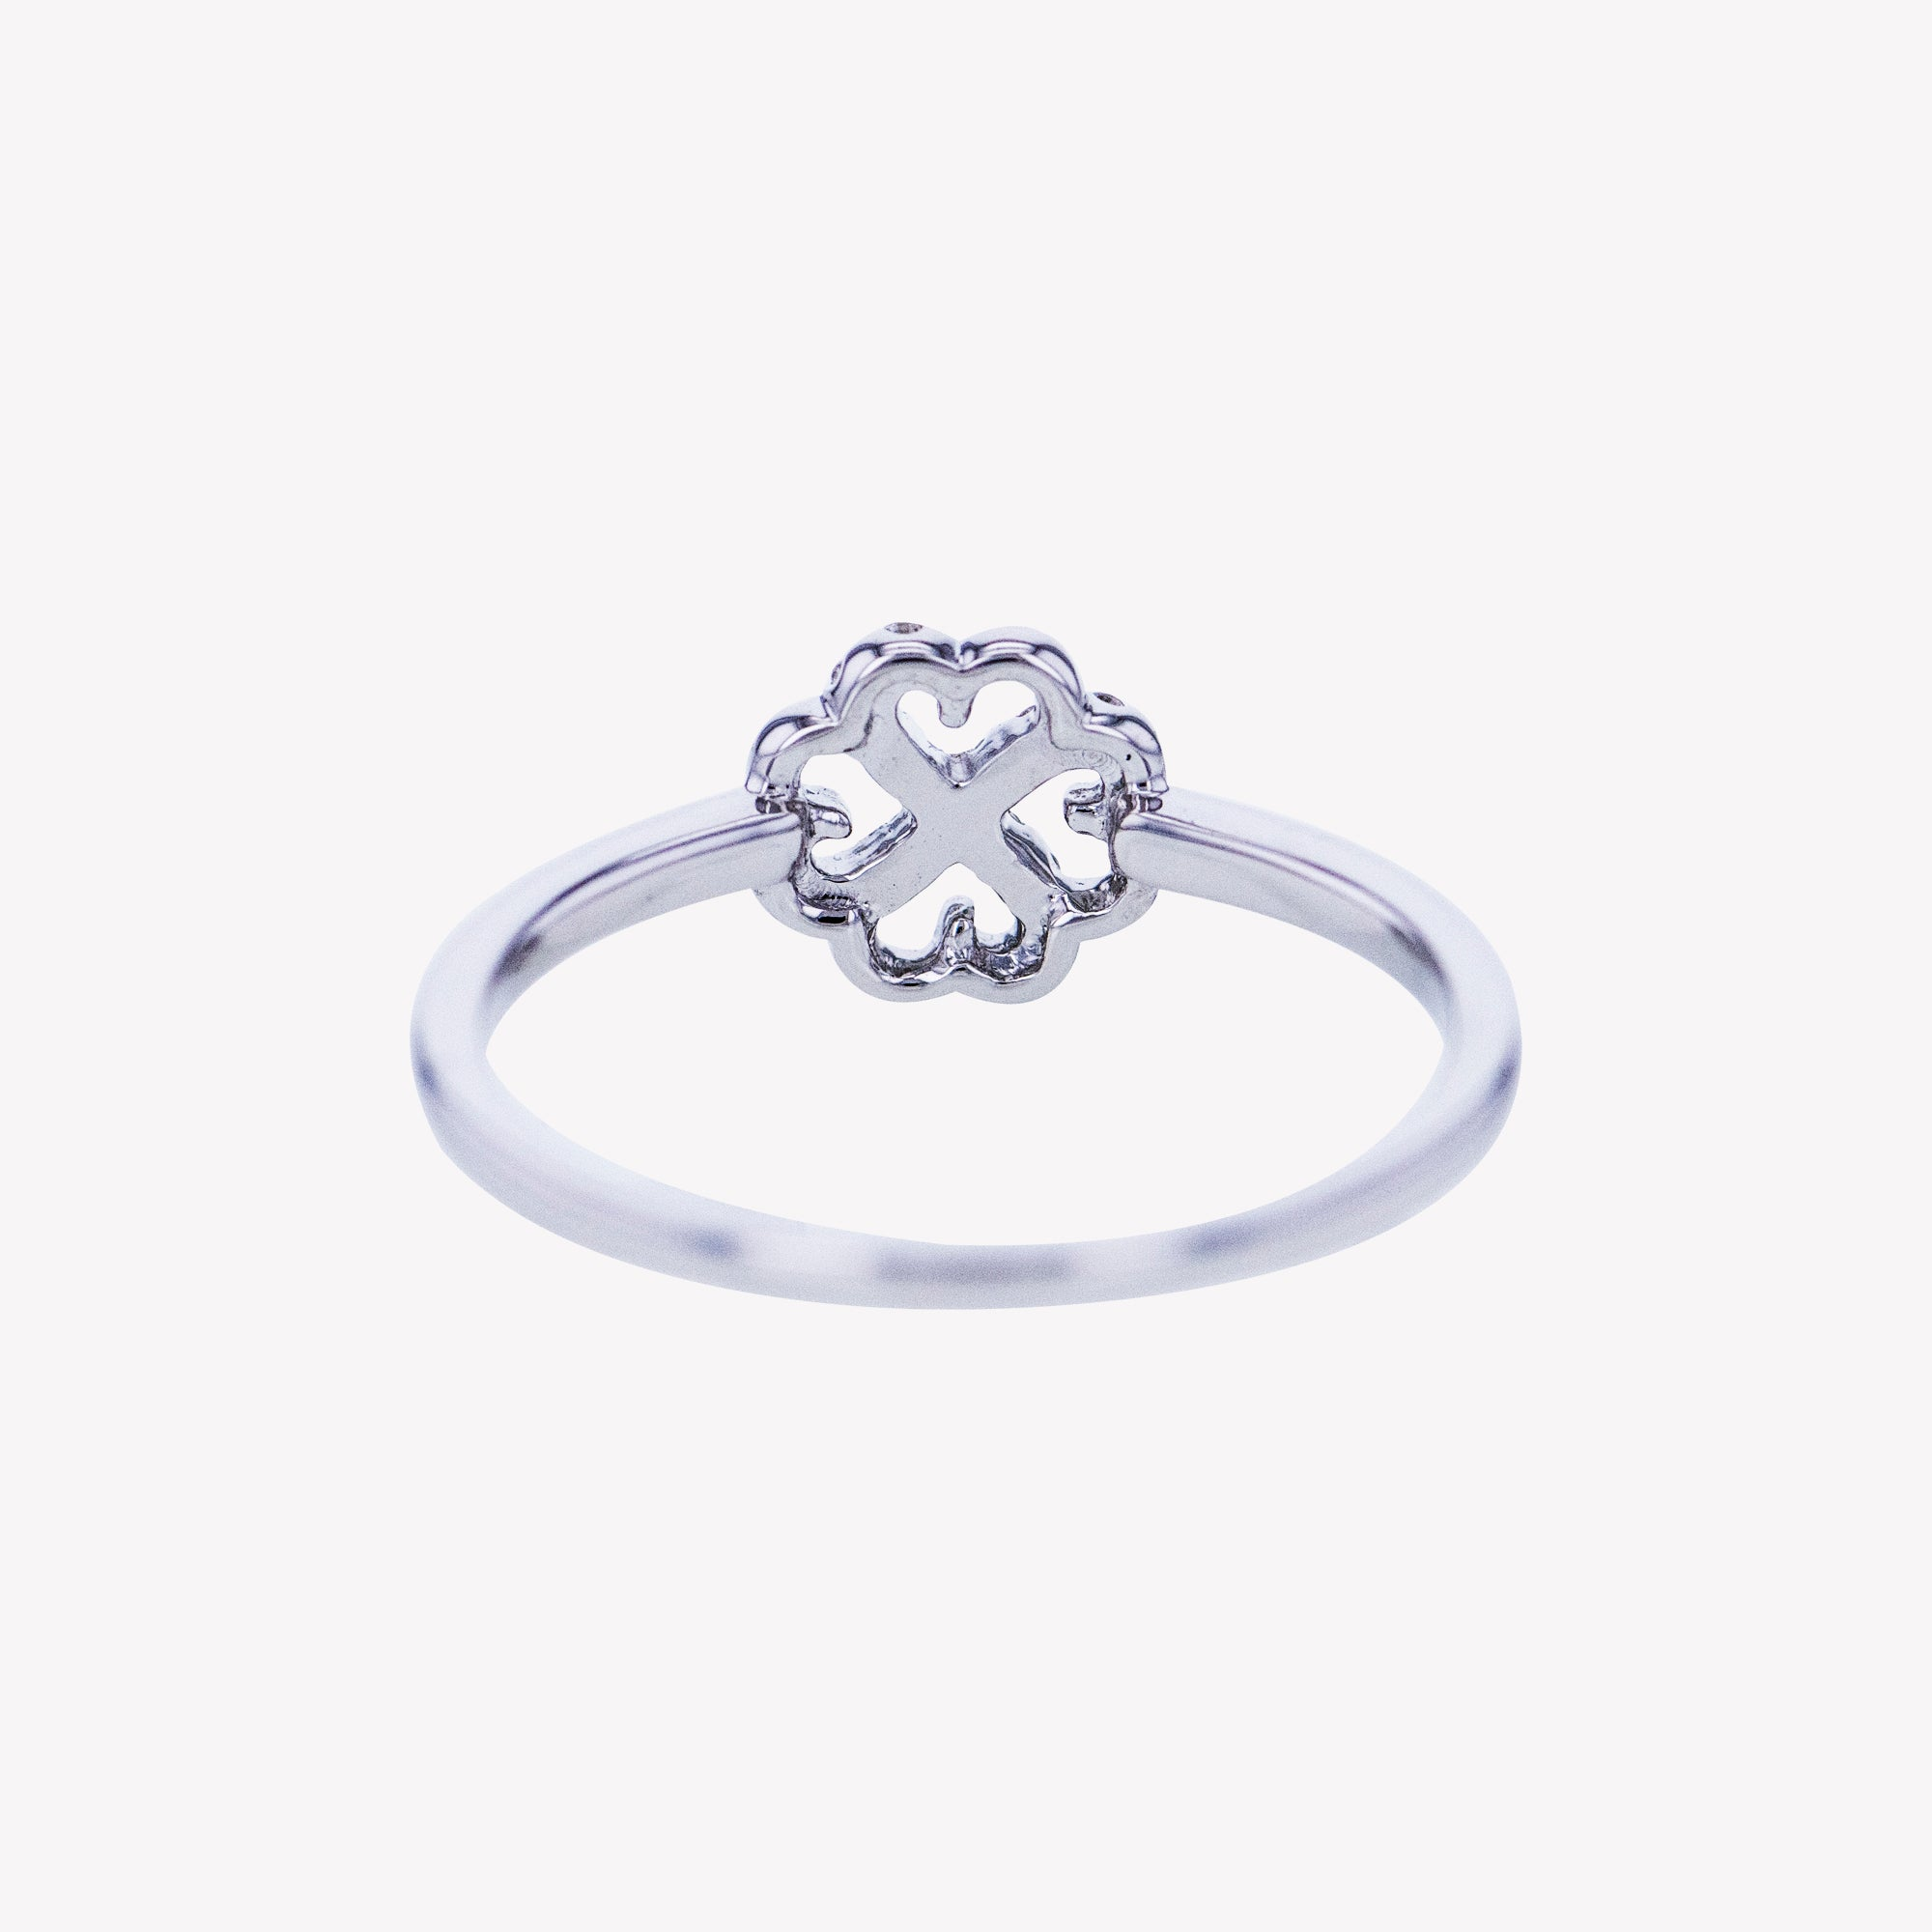 Clover Ring in White Gold